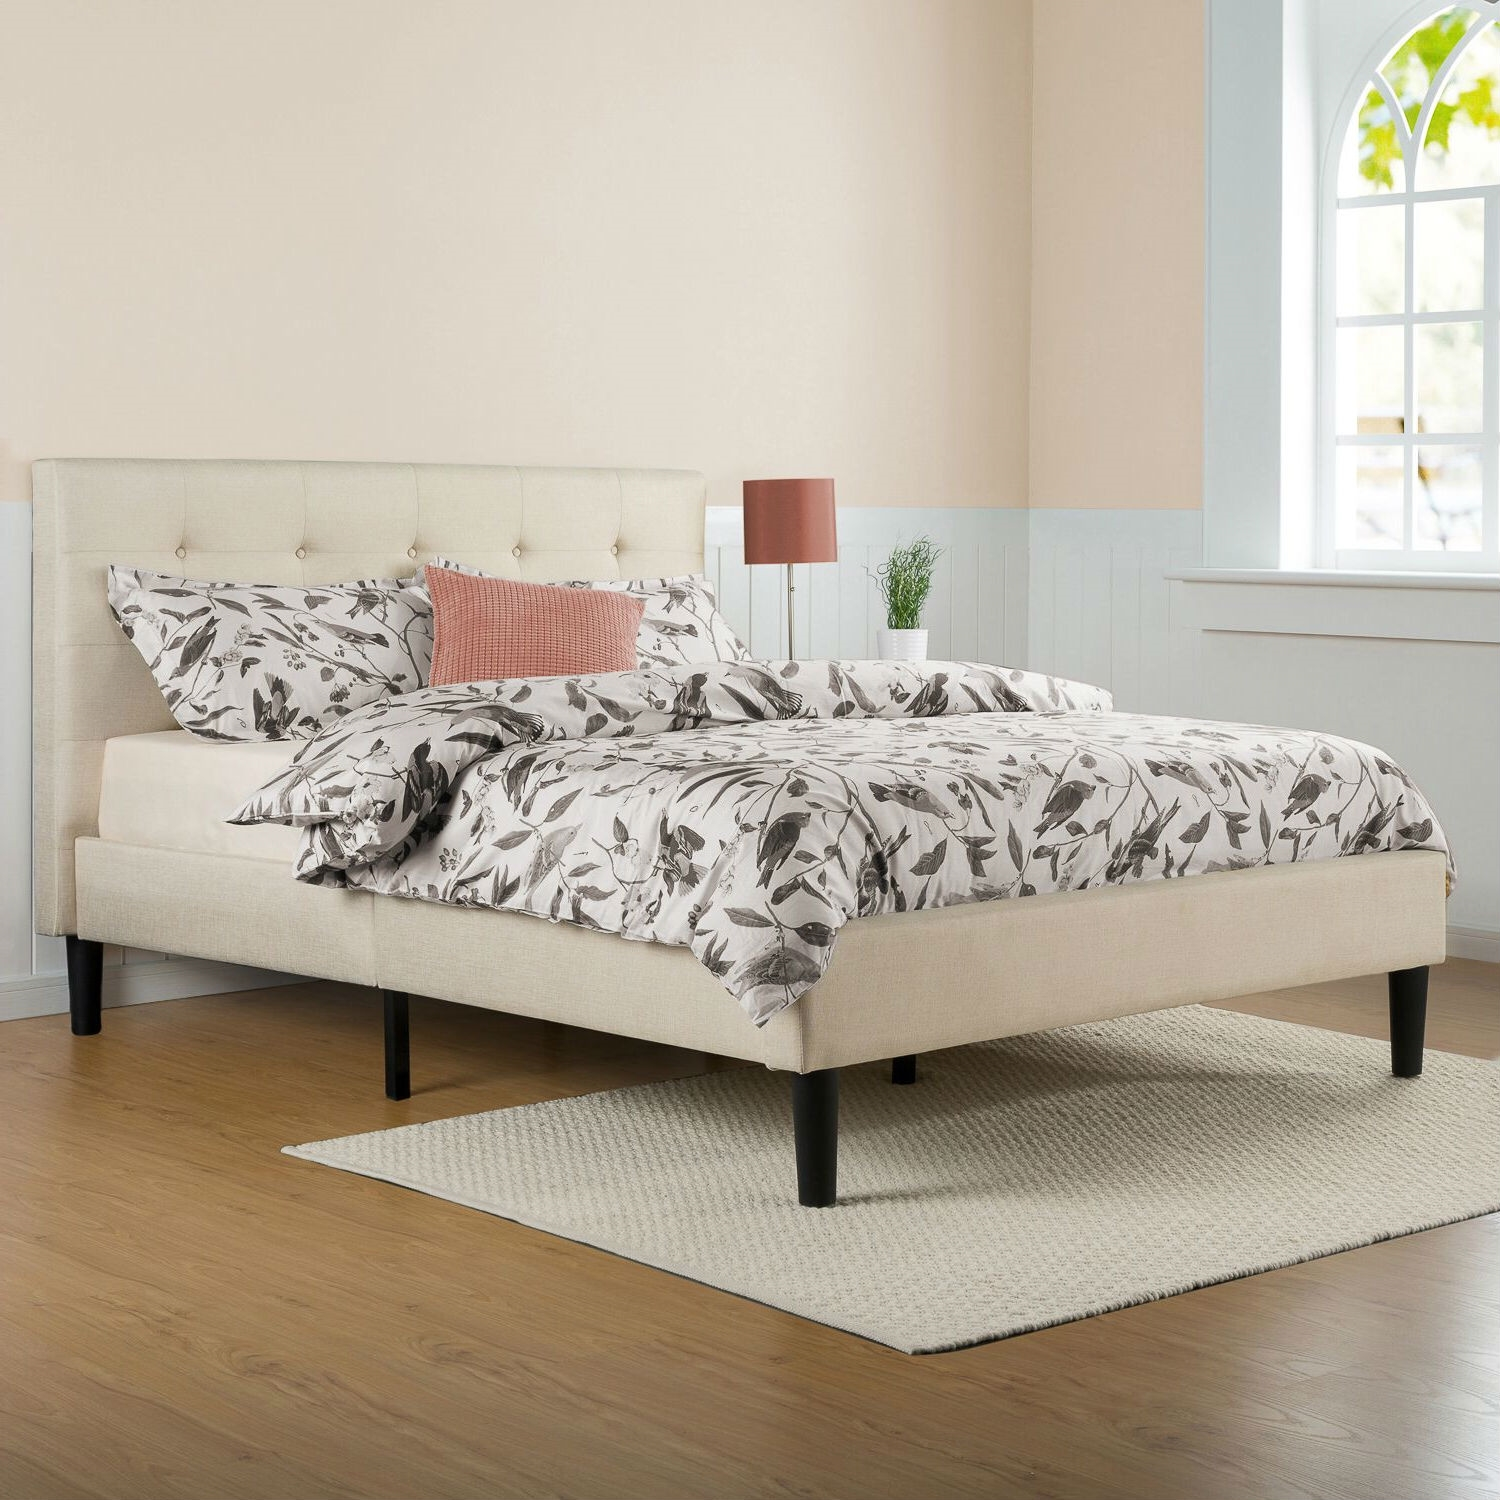 Full size Taupe Beige Upholstered Platform Bed Frame with Headboard